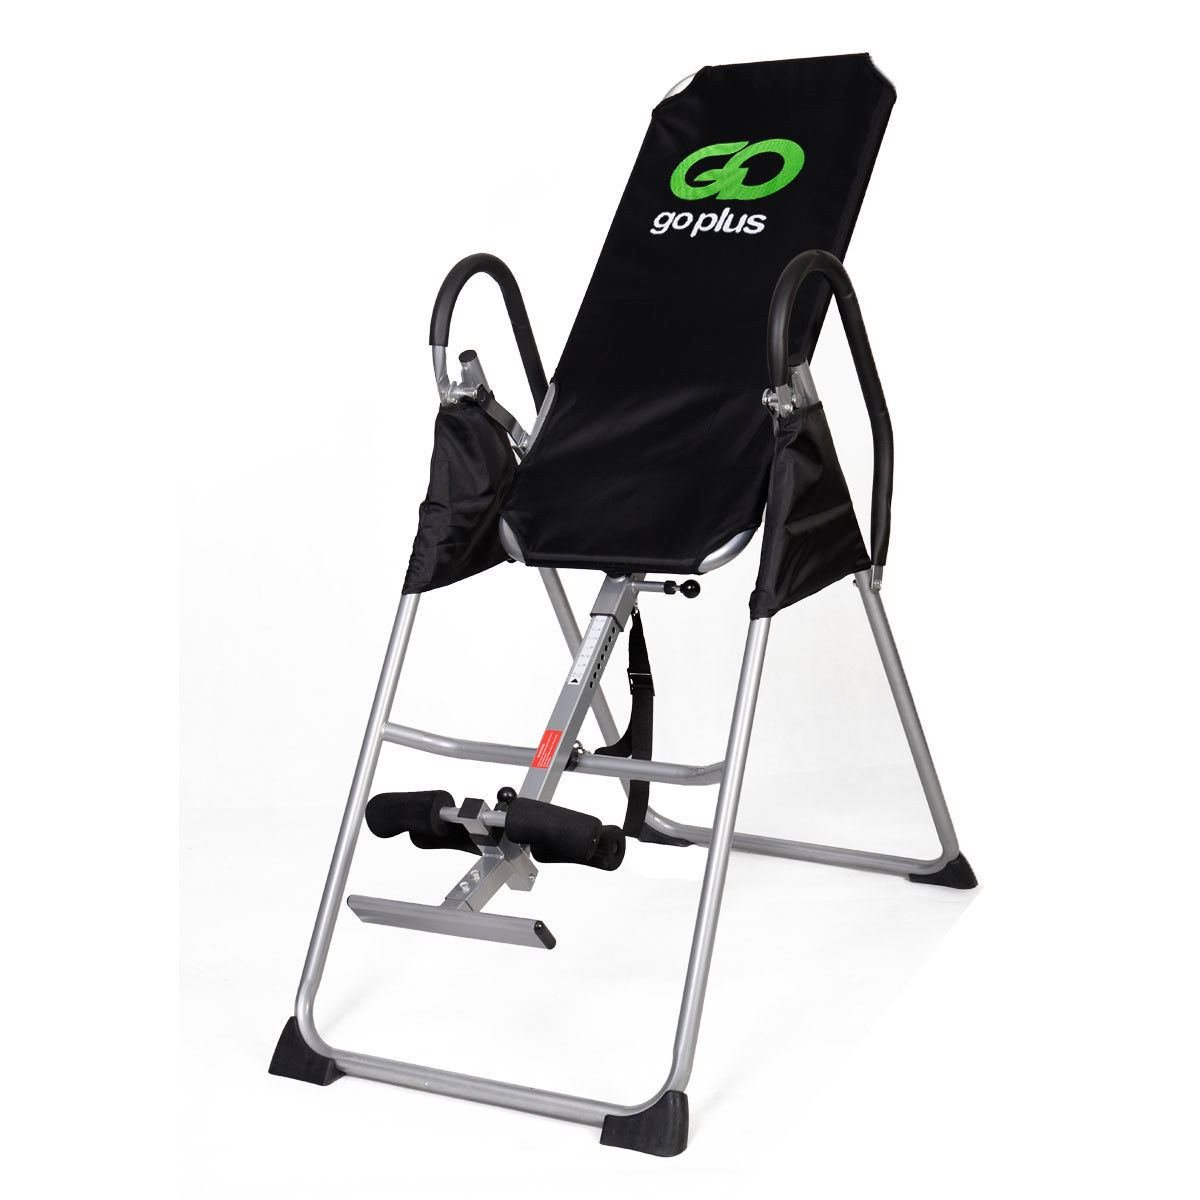 New Inversion Table Deluxe Fitness Chiropractic Table Back Pain Relief Exercise